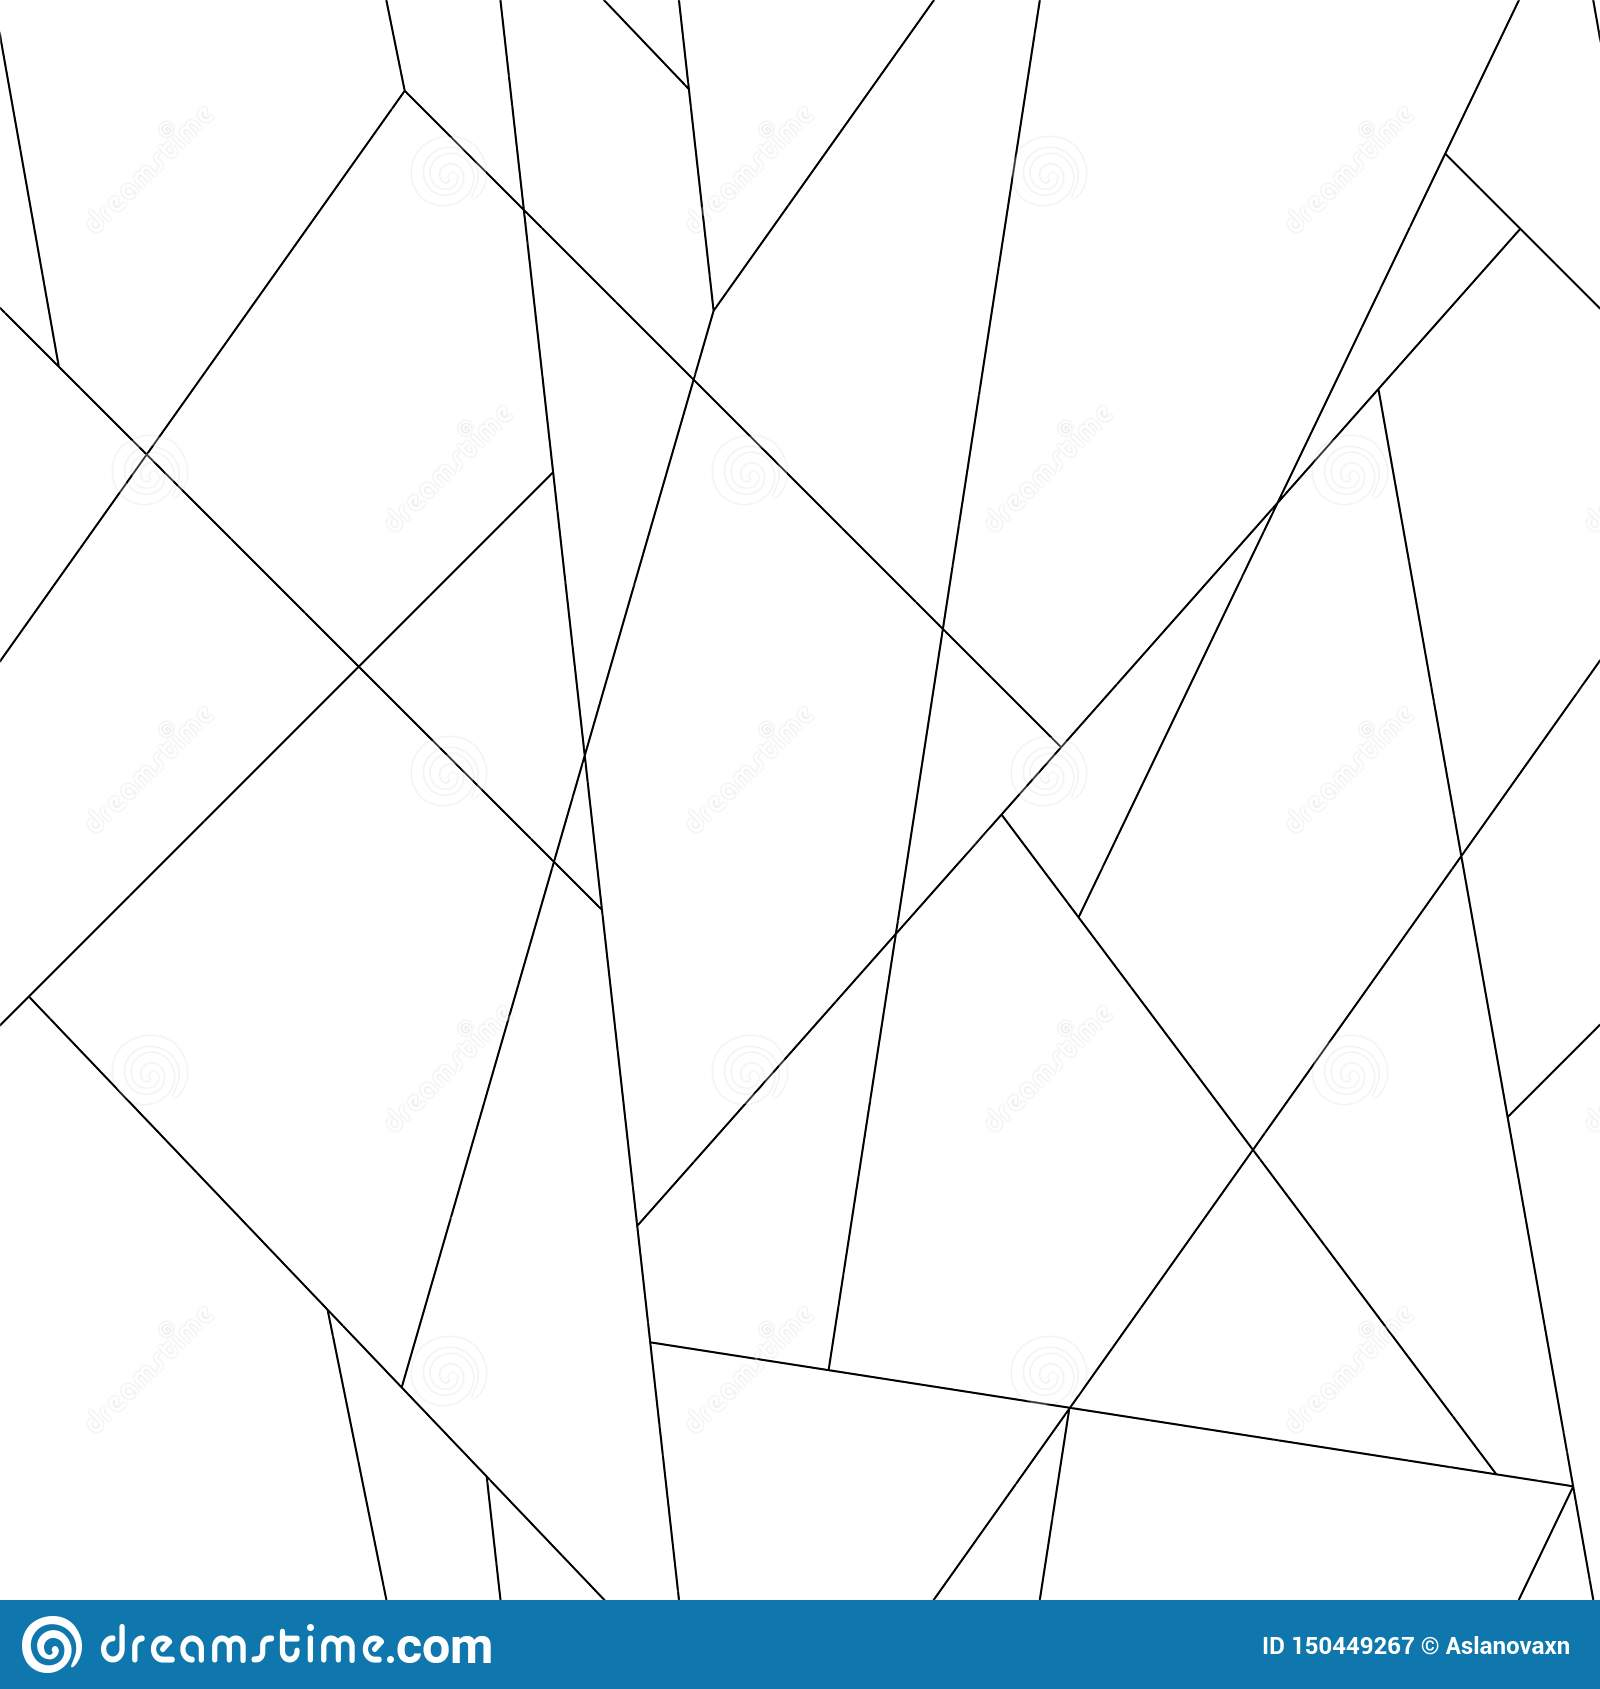 Thin lines pattern. Seamless vector trendy stylish thin black strokes background